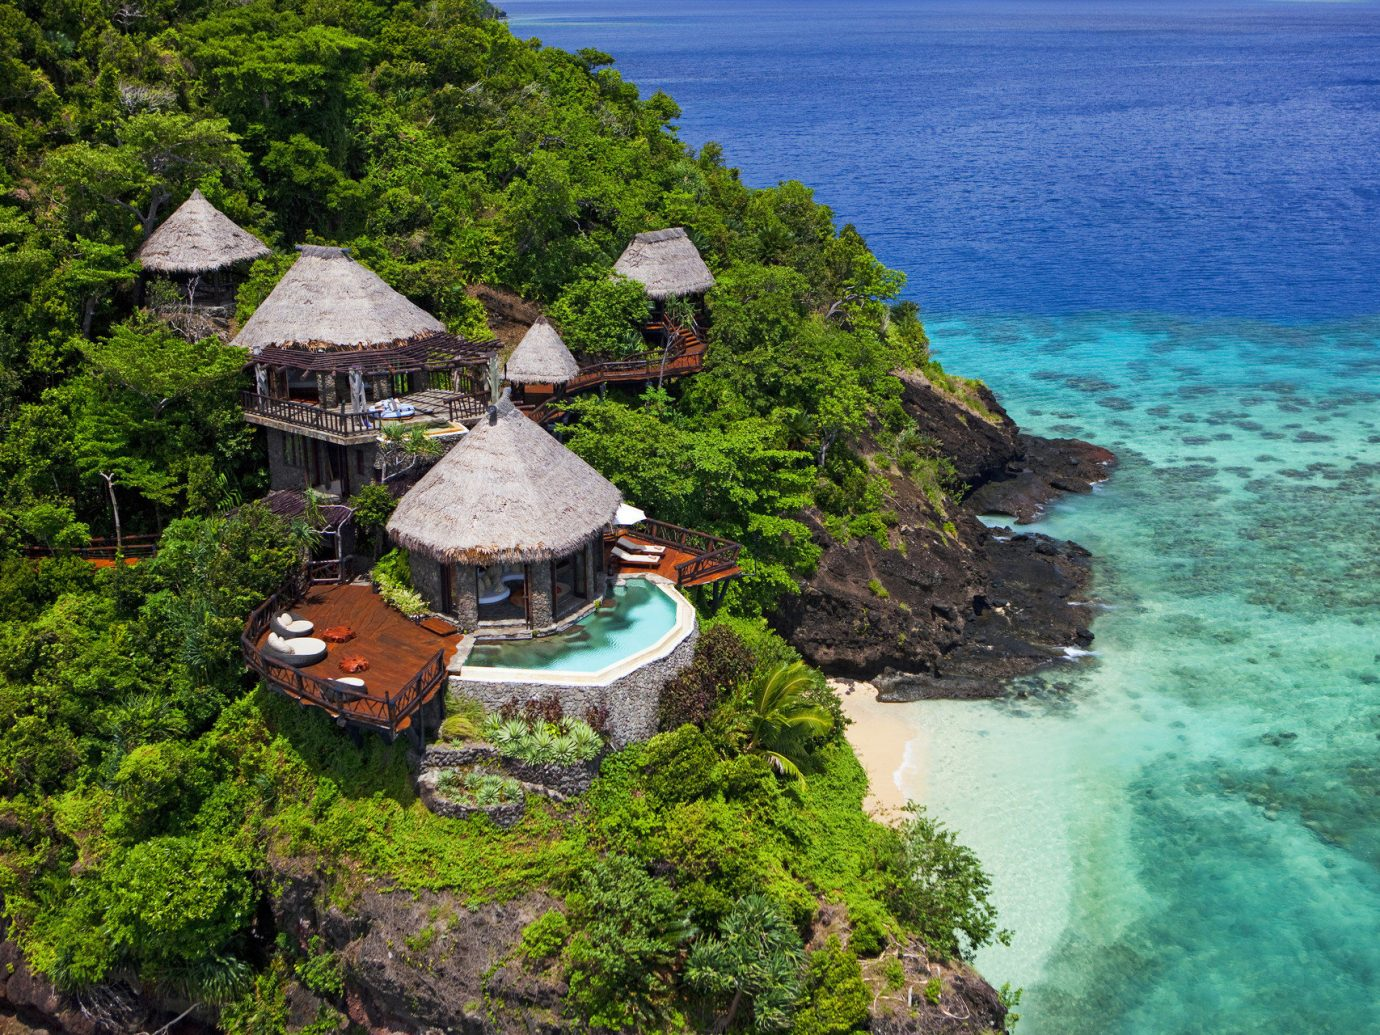 All-Inclusive Resorts Beach Boutique Hotels clear water Greenery Hotels huts isolation Luxury Luxury Travel Ocean private private pool quaint remote Romance serene Tropical turquoise white sands outdoor water Nature vacation mountain Coast Sea tropics terrain surrounded hillside lush